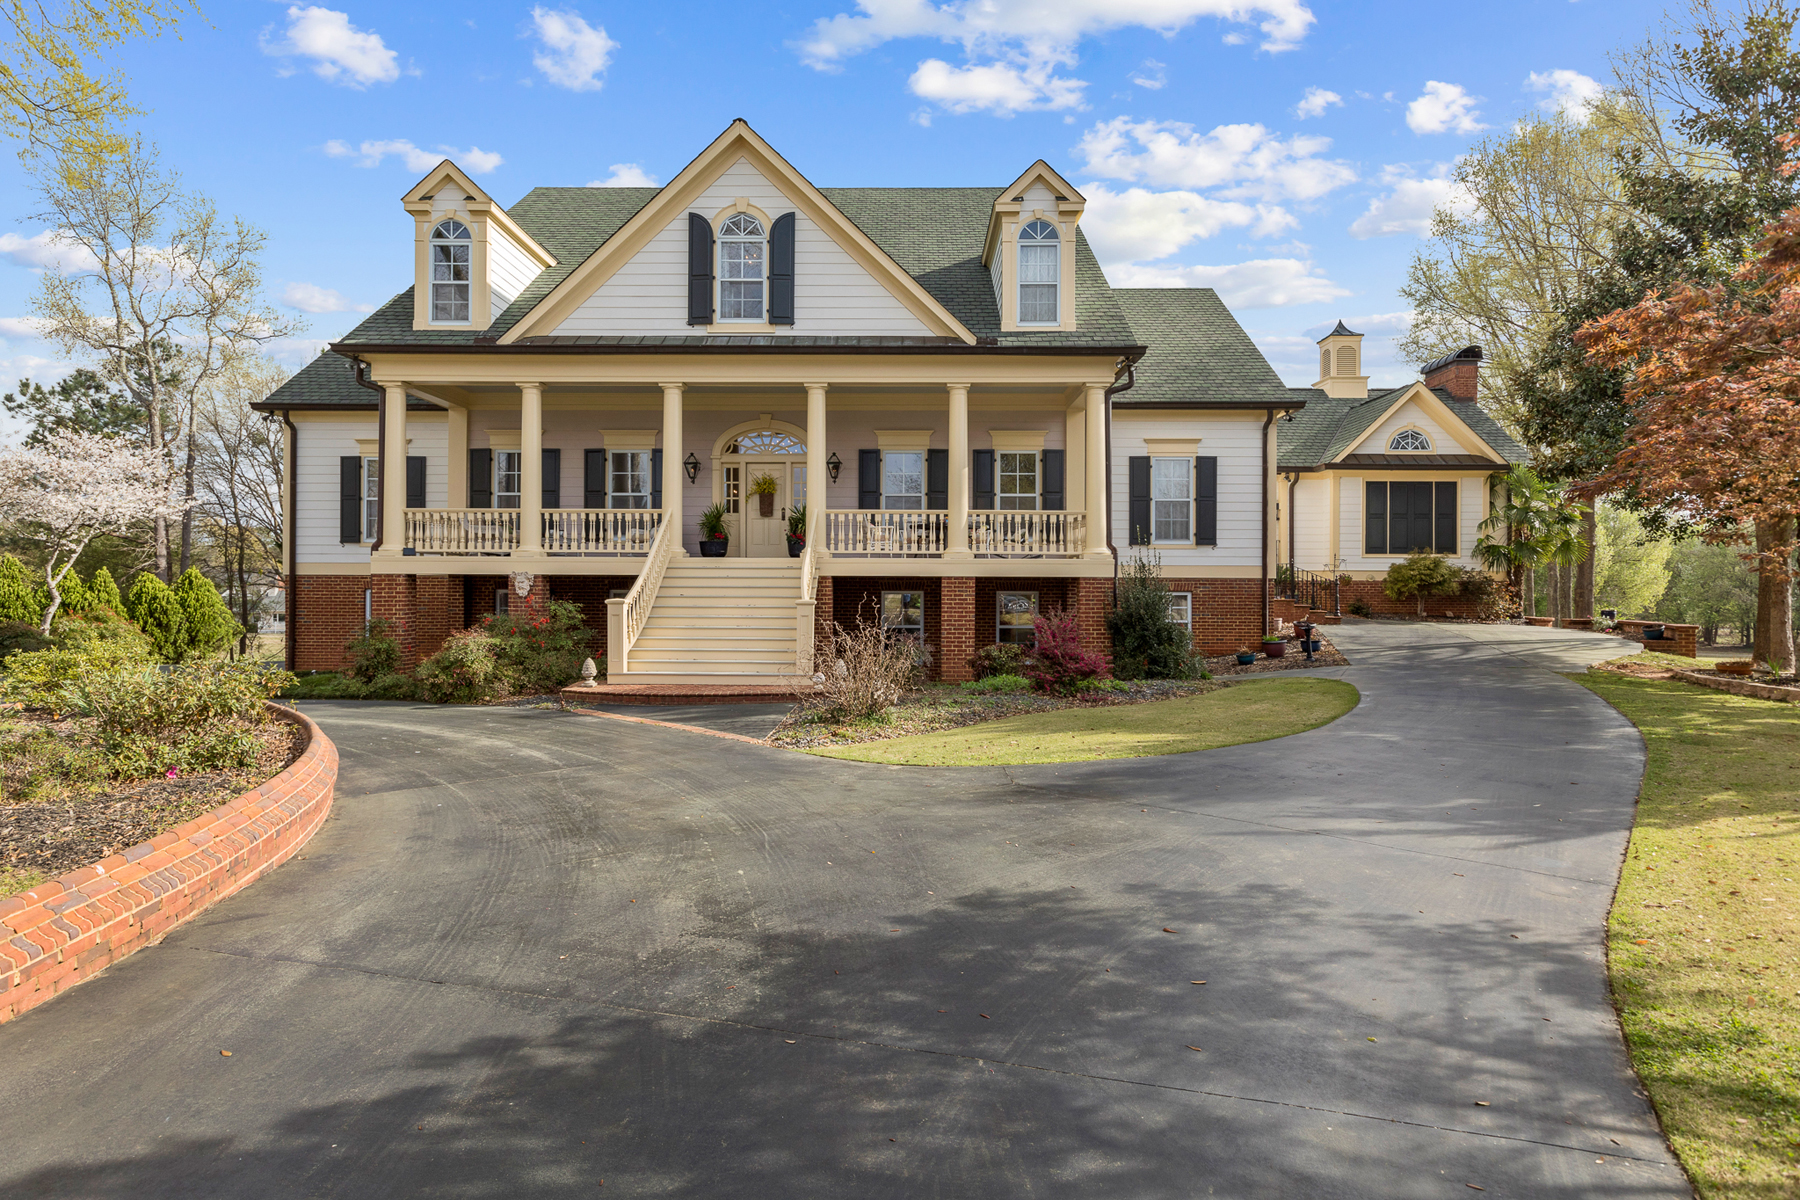 Single Family Homes for Sale at Stunning Architectural Beauty with Panoramic Golf Course Views 170 Isleworth Way Fayetteville, Georgia 30215 United States